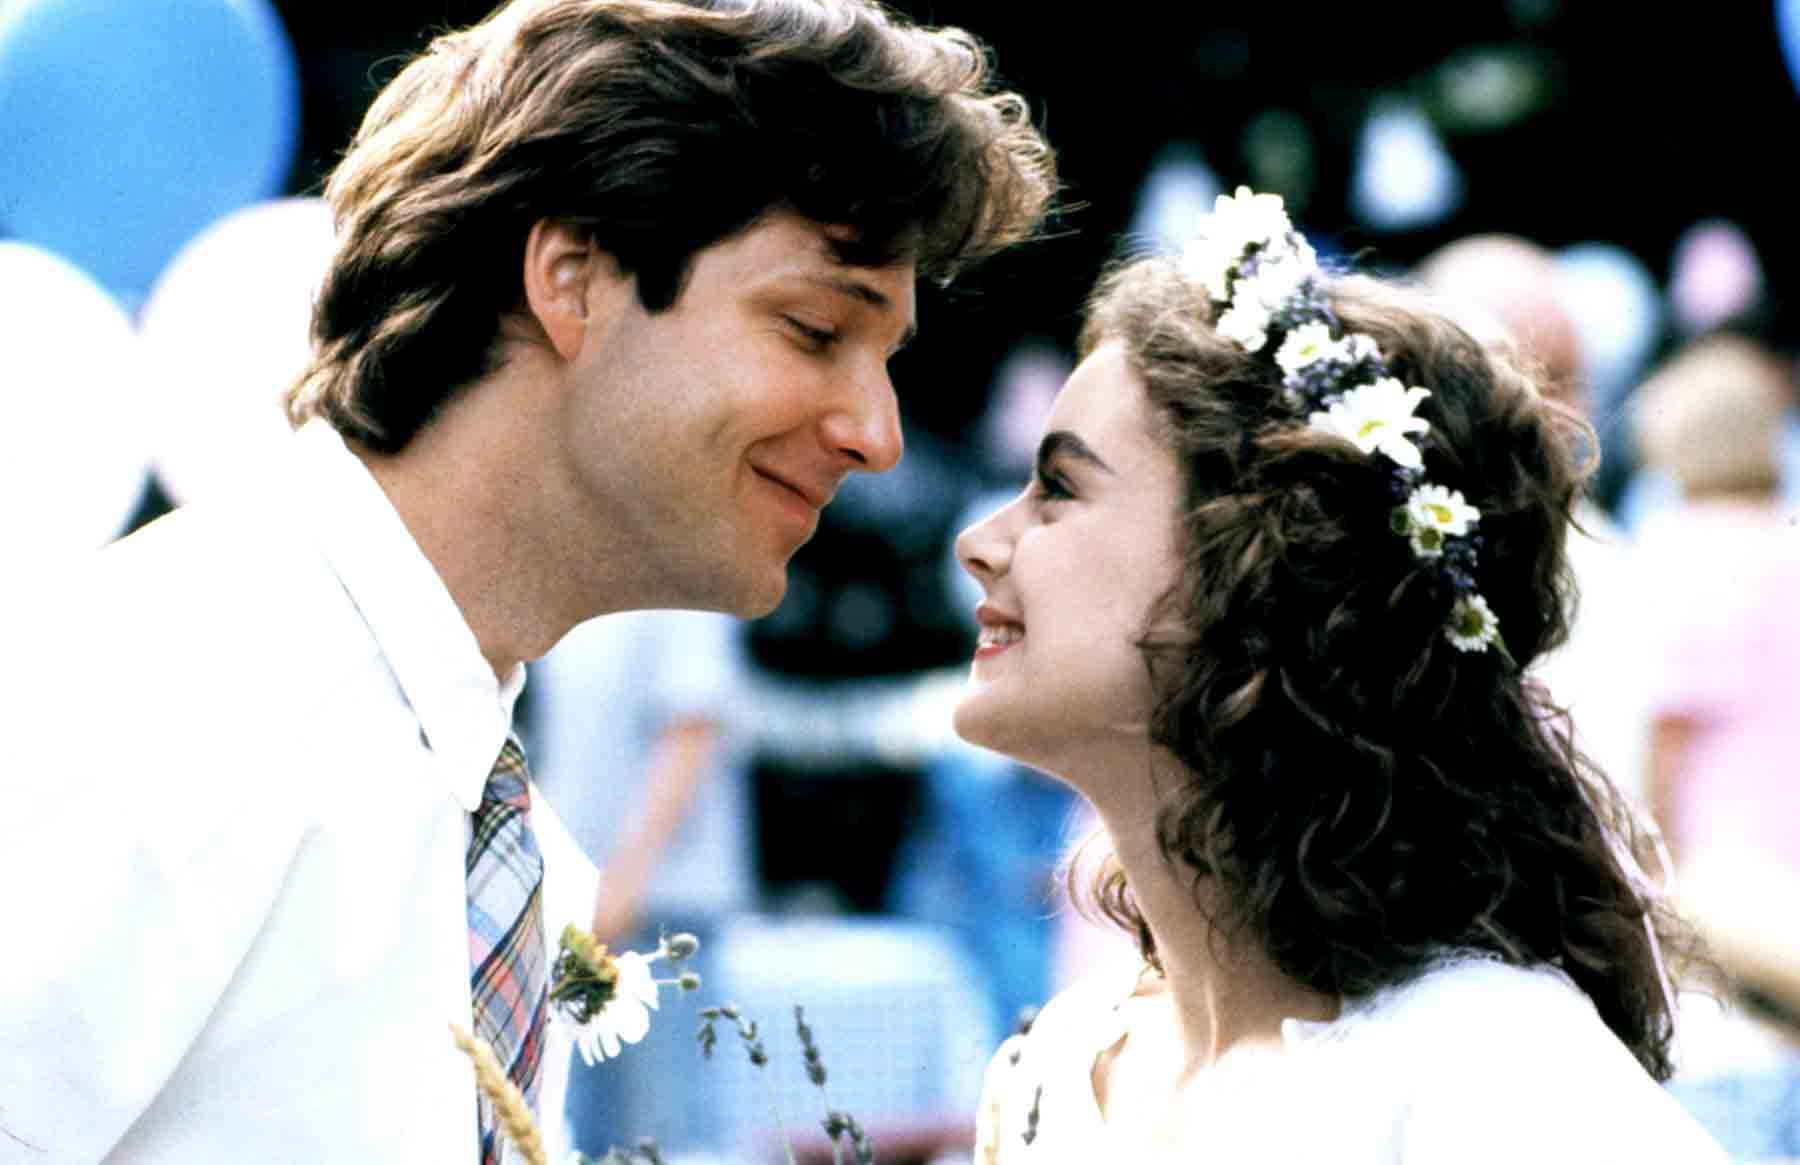 George Newbern, Kimberly Williams, Father of the Bride